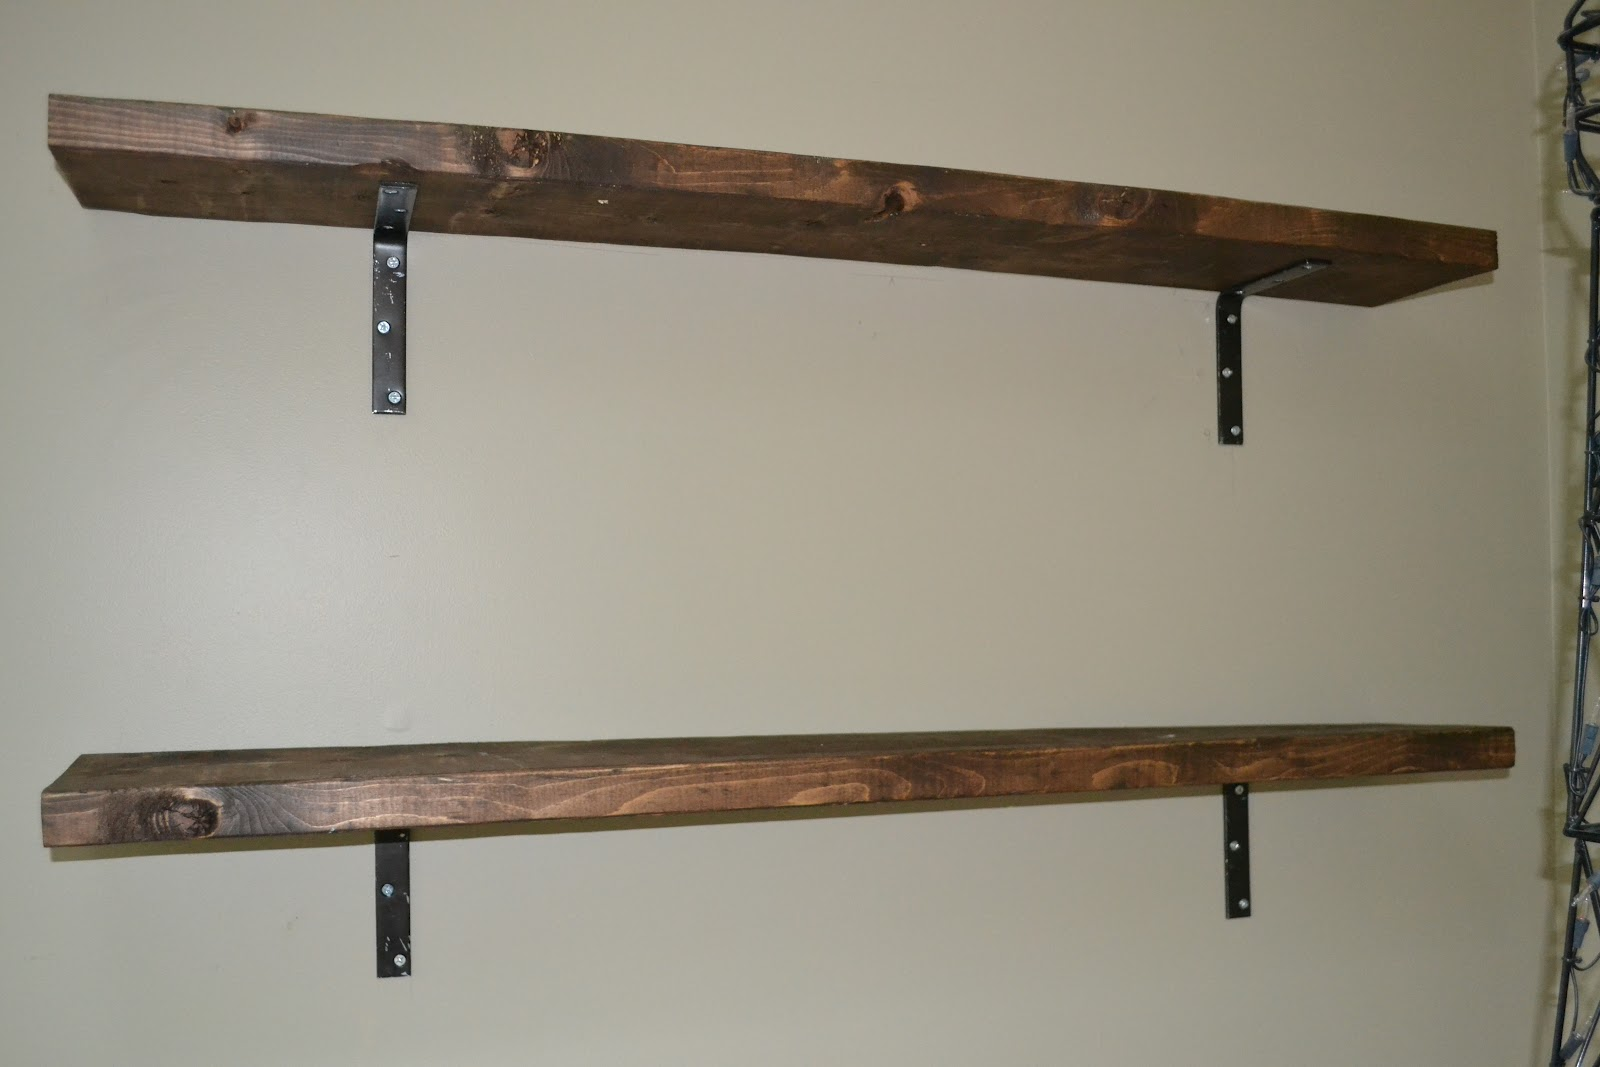 Homemade Shelves | www.woodworking.bofusfocus.com